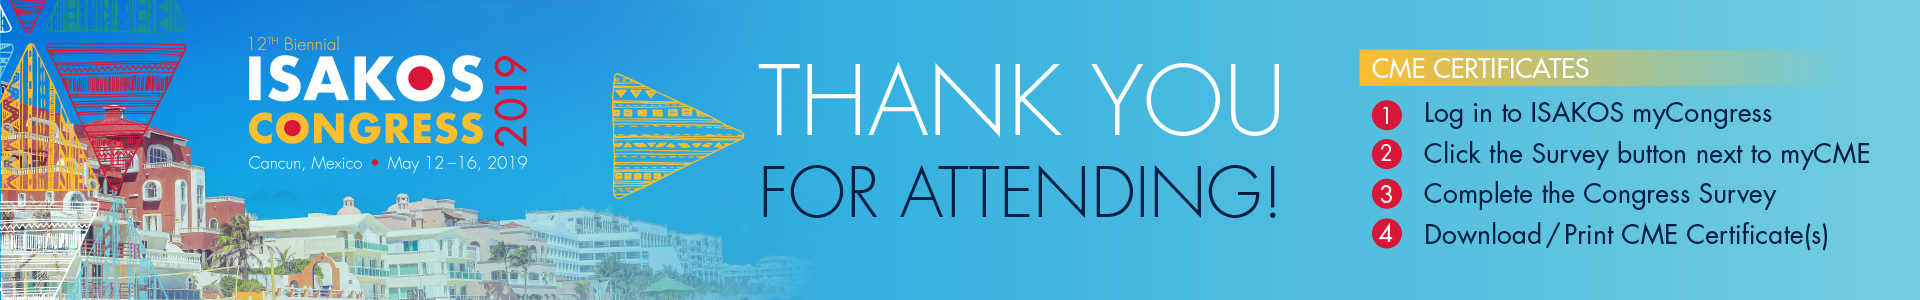 2019 ISAKOS Congress: Thank You!